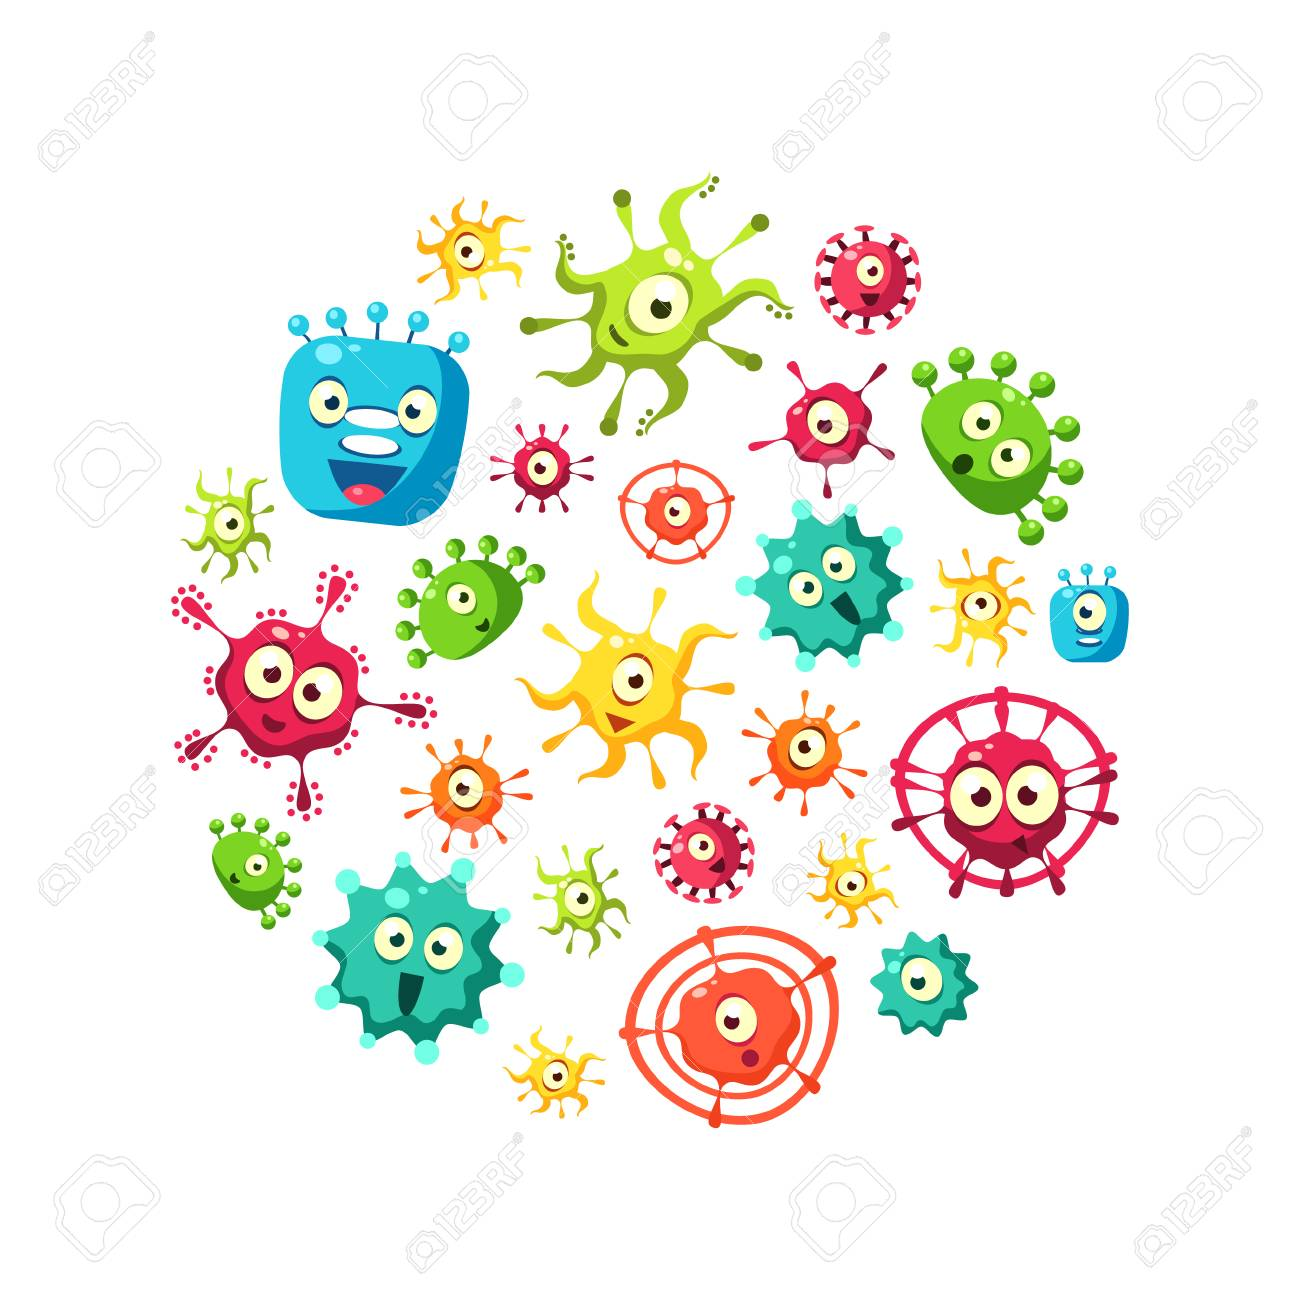 Bacteria Banner Template with Cute Colorful Microorganisms Pattern in Circular Shape, Probiotics, Medicine or Dietary Supplements for Gastrointestinal Health Vector Illustration - 122450168